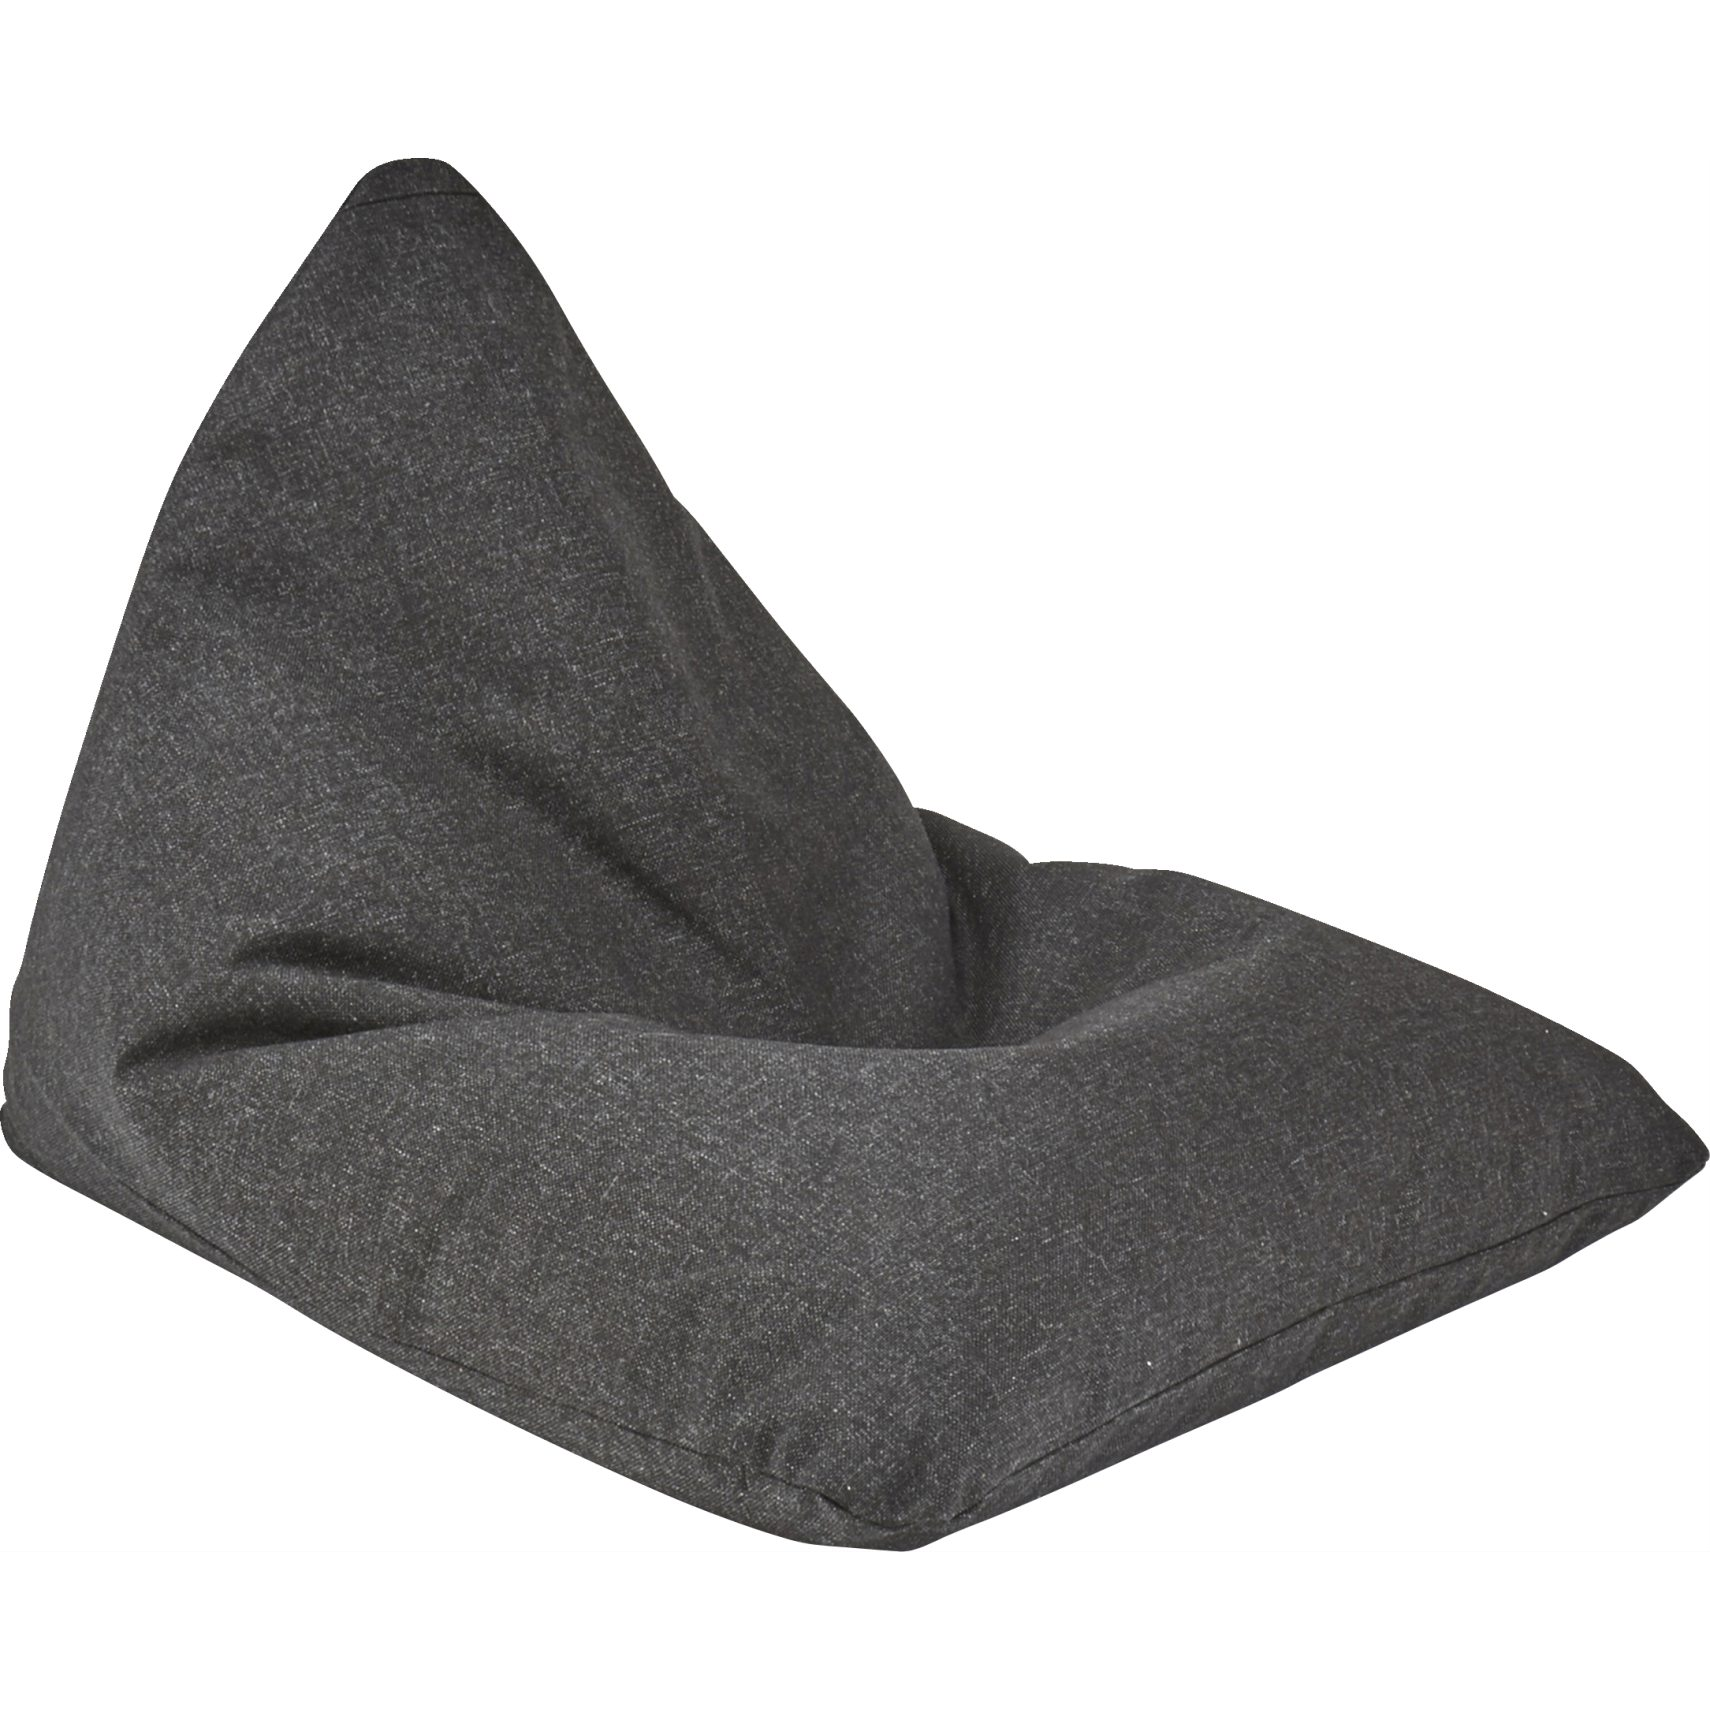 Soft Peak Sittsäck - Twist 564 Black och EPS-kulor